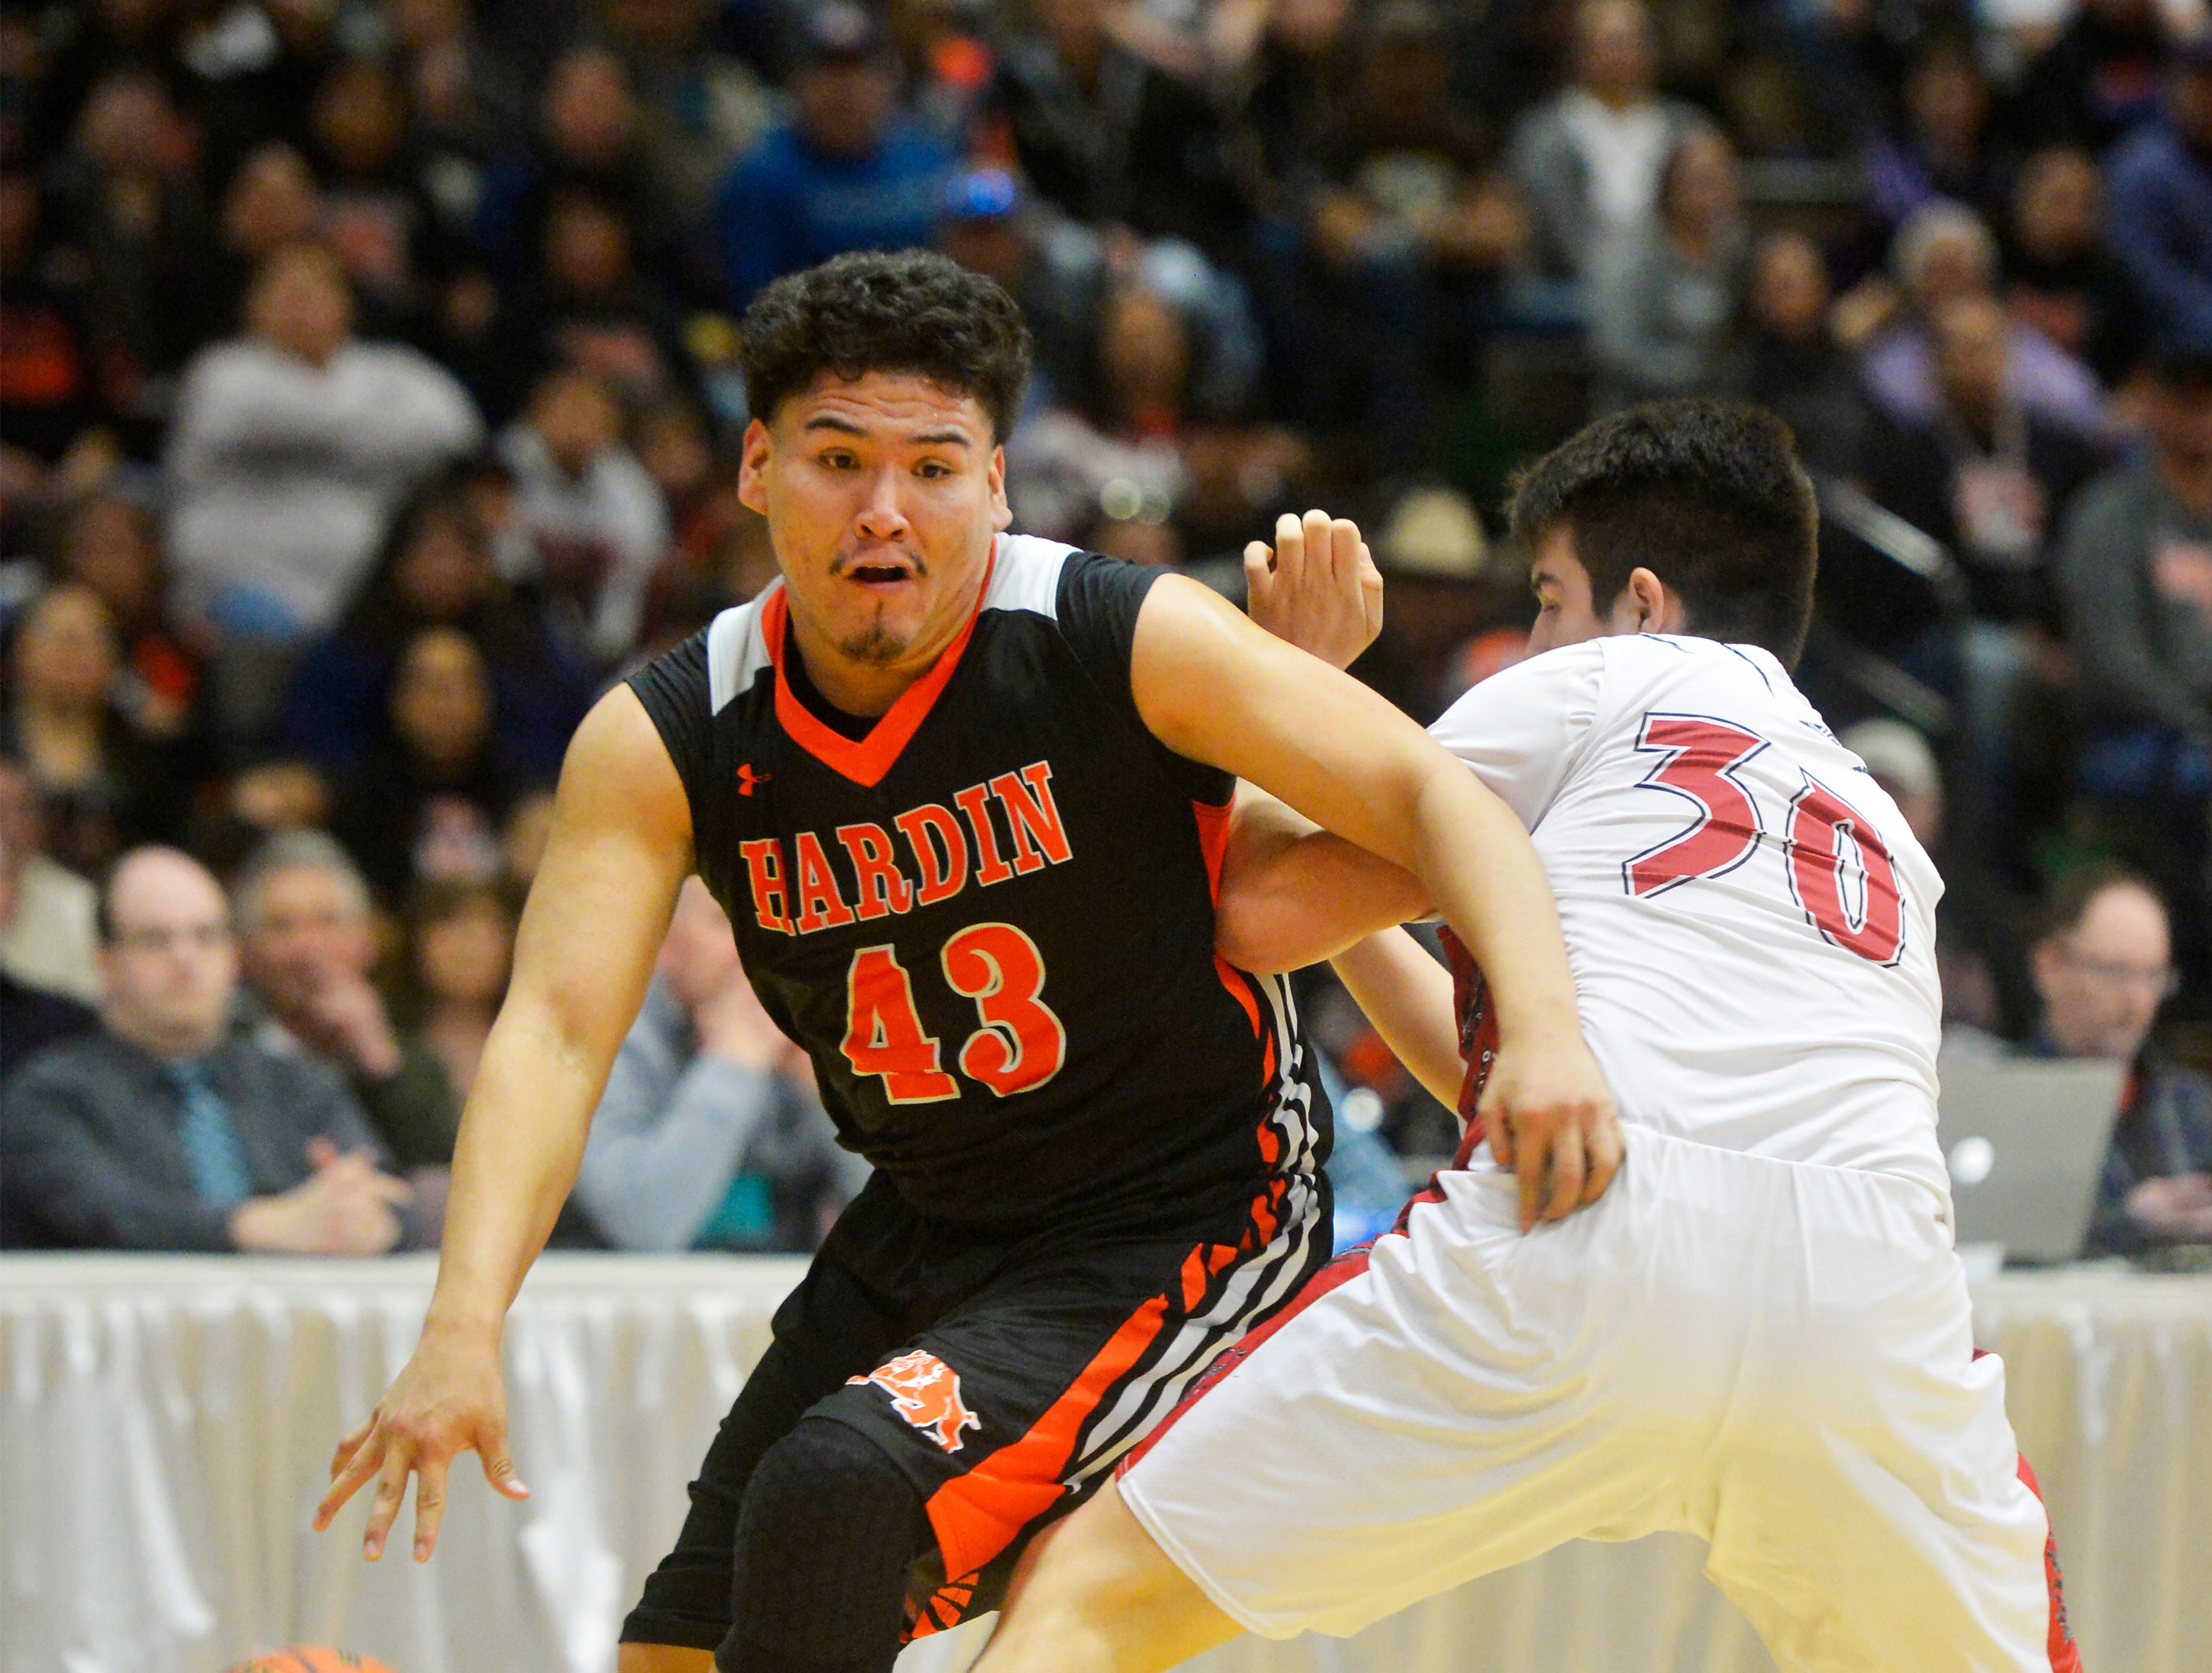 Browning and Hardin play in the first round of the Class A Boys State Basketball Tournament, Thursday.